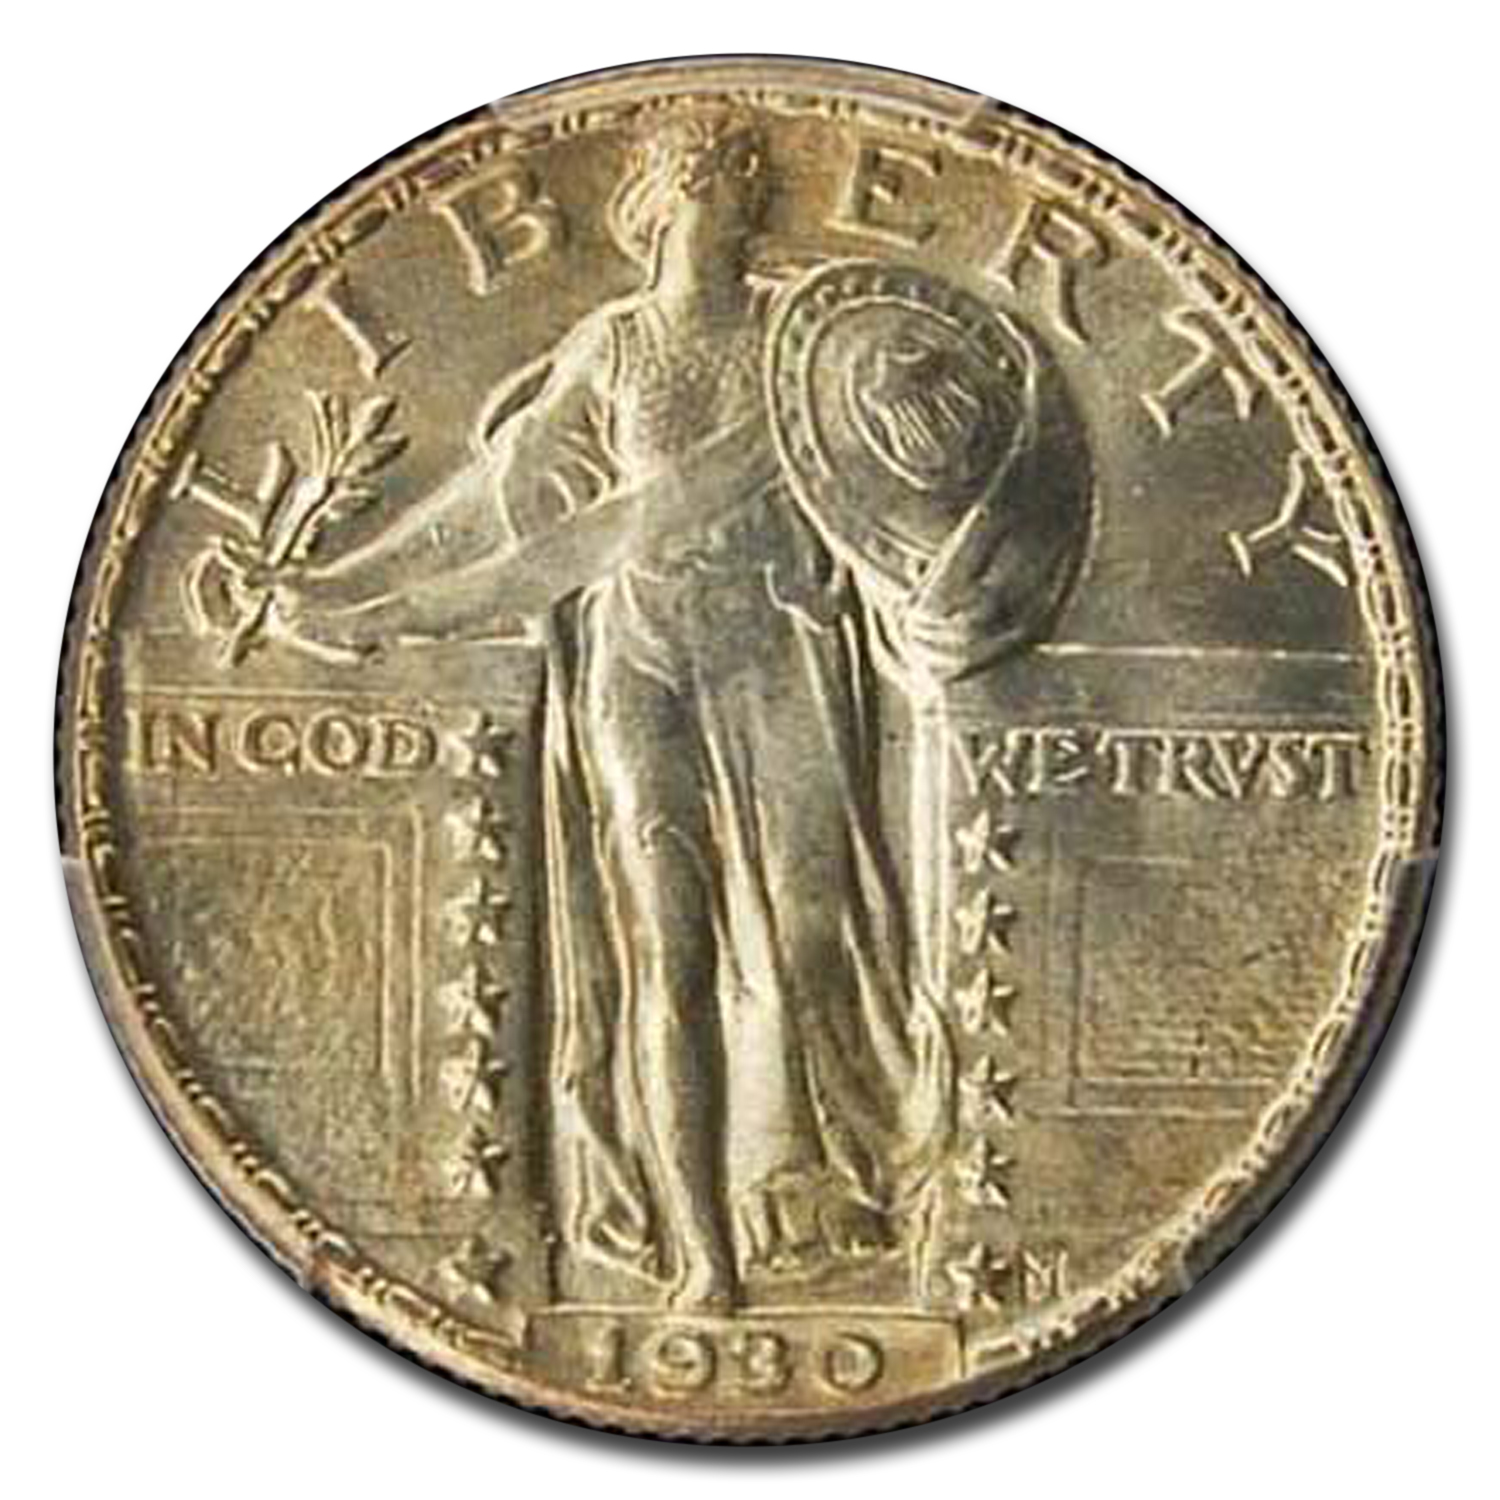 1930 Standing Liberty Quarter MS-65 PCGS (Full Head)